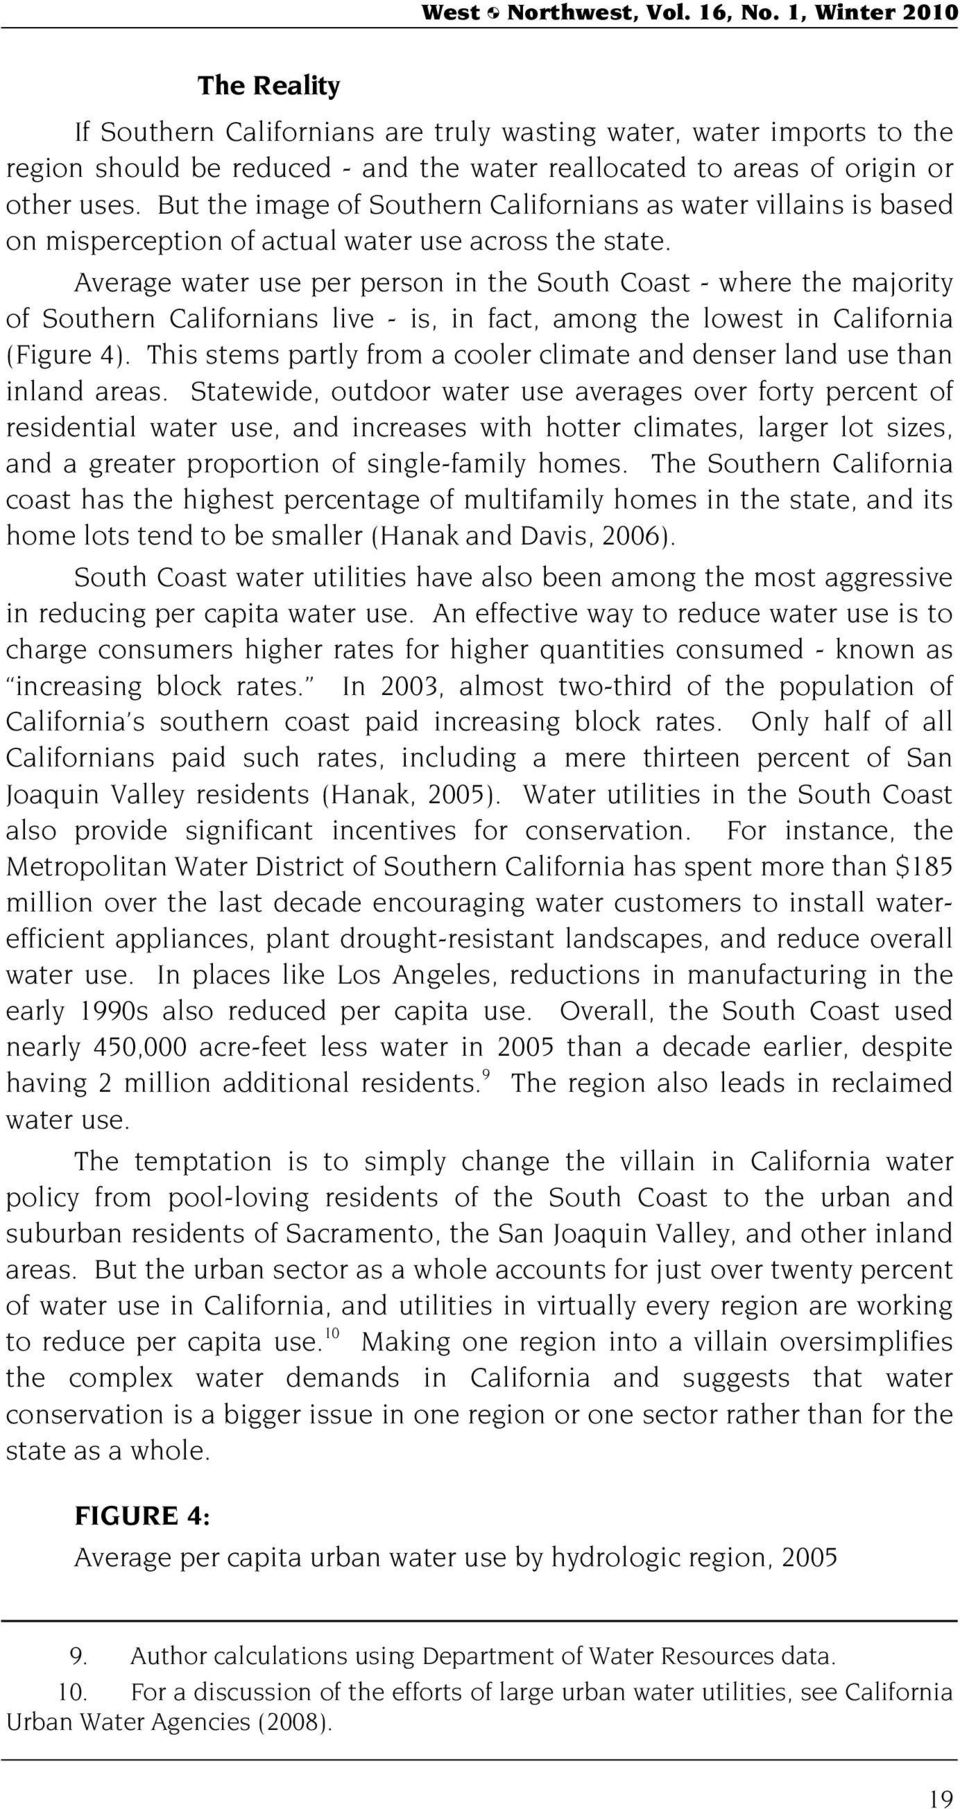 Average water use per person in the South Coast - where the majority of Southern Californians live - is, in fact, among the lowest in California (Figure 4).